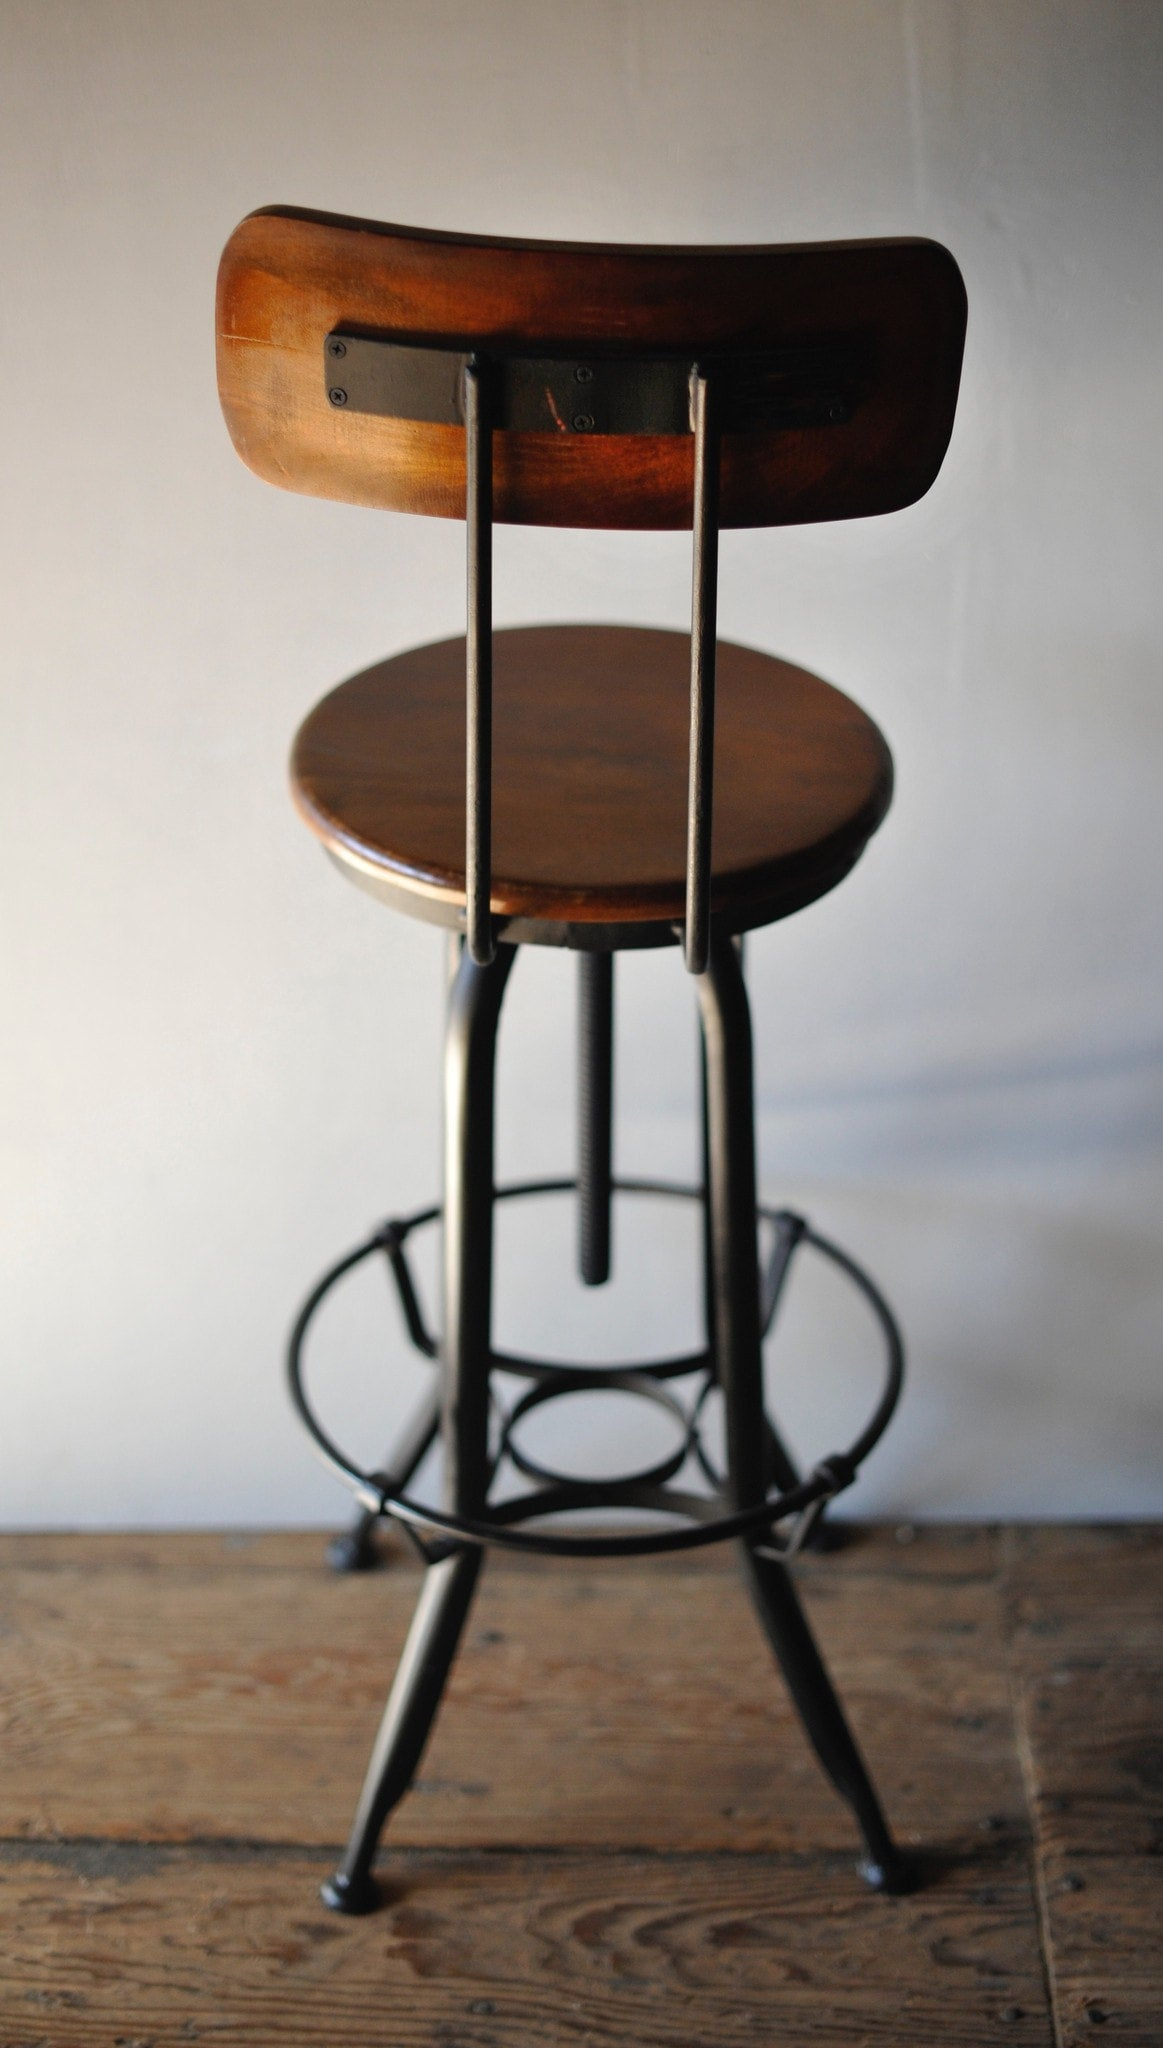 Industrial Metal and Wood Counter Stools & Industrial Metal and Wood Counter Stools | SHOP NECTAR islam-shia.org